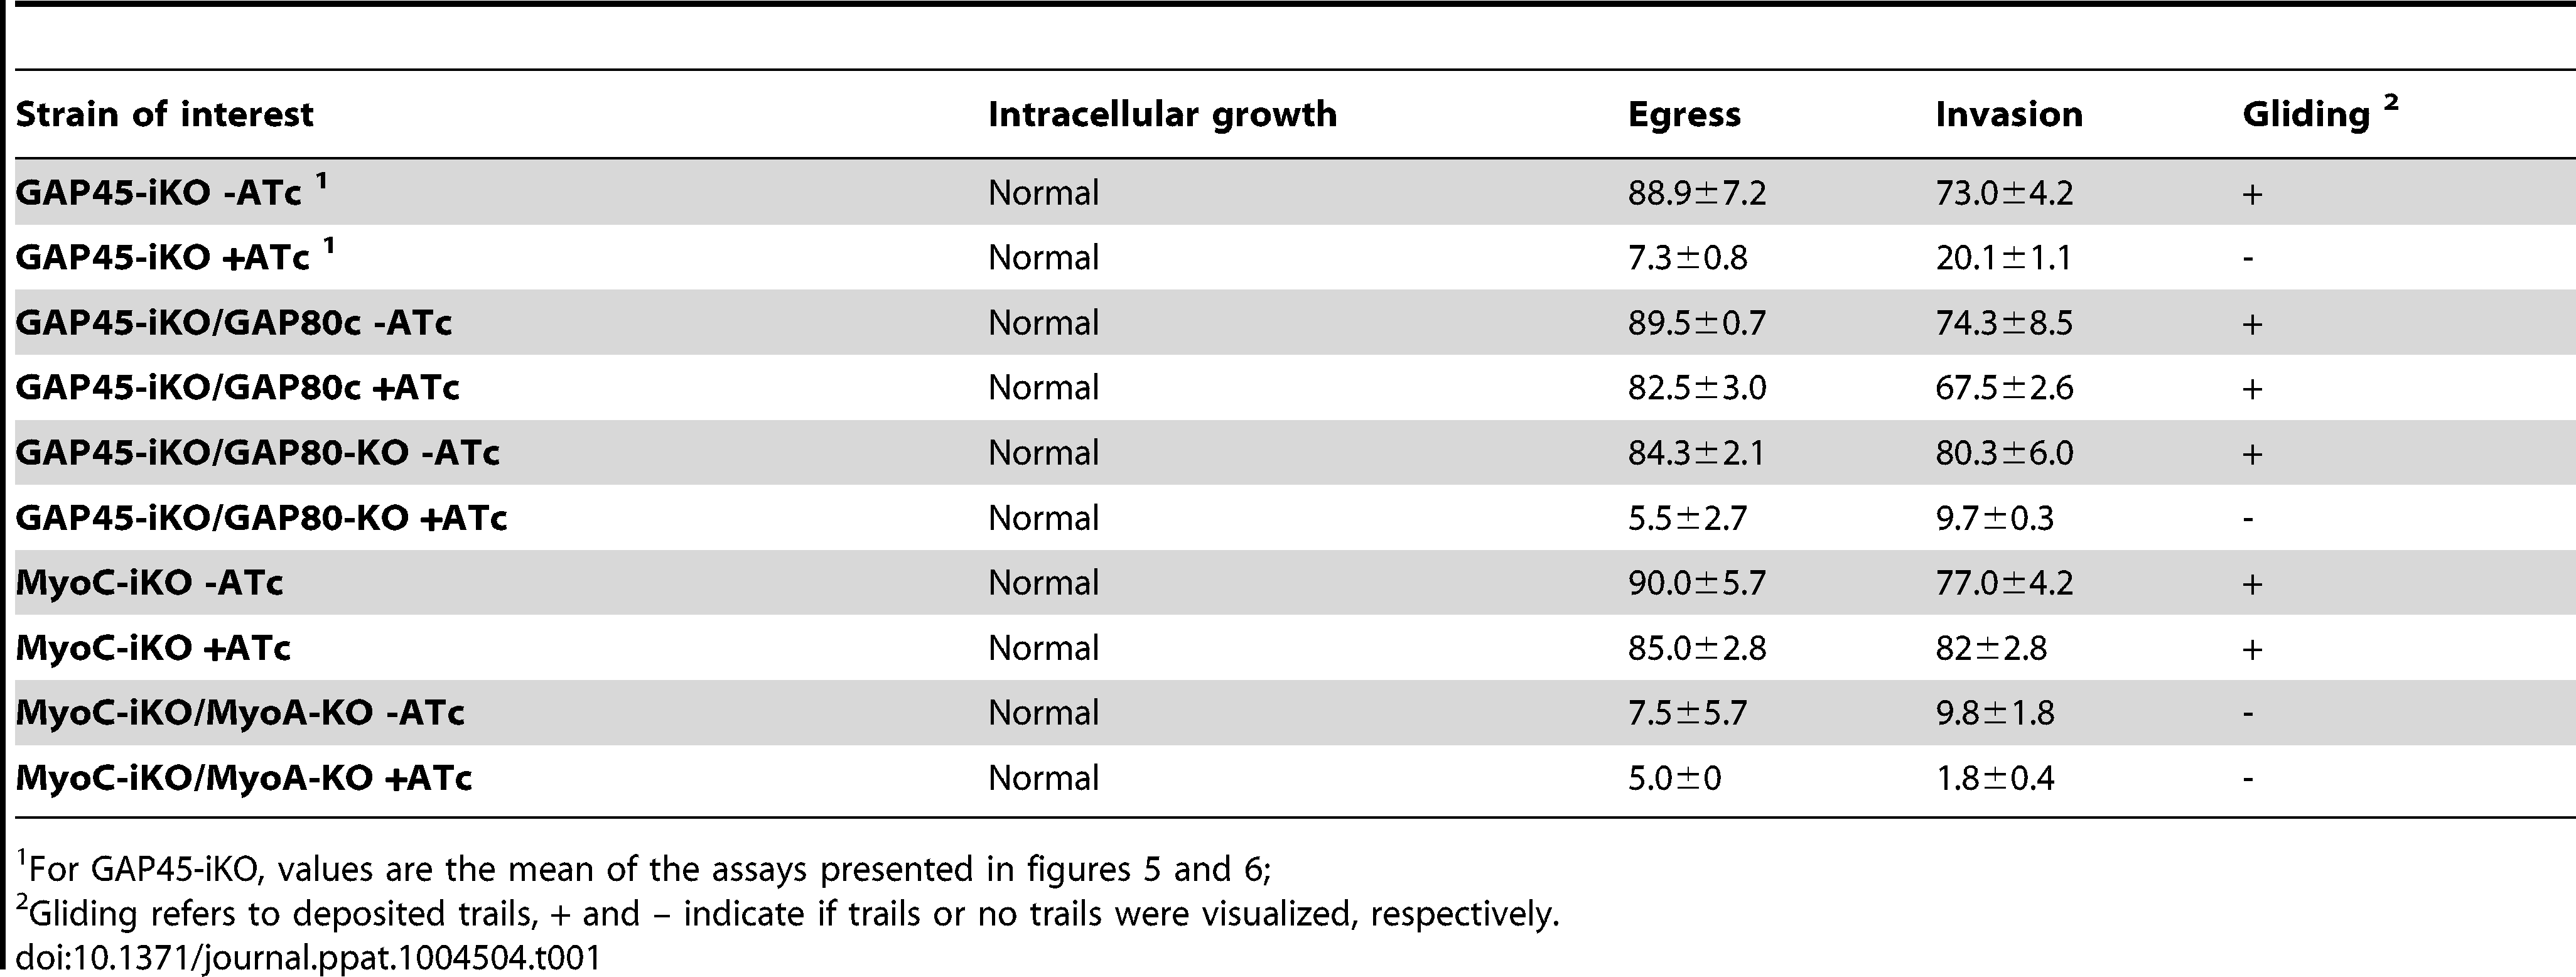 Summary of the phenotypes observed in this study.